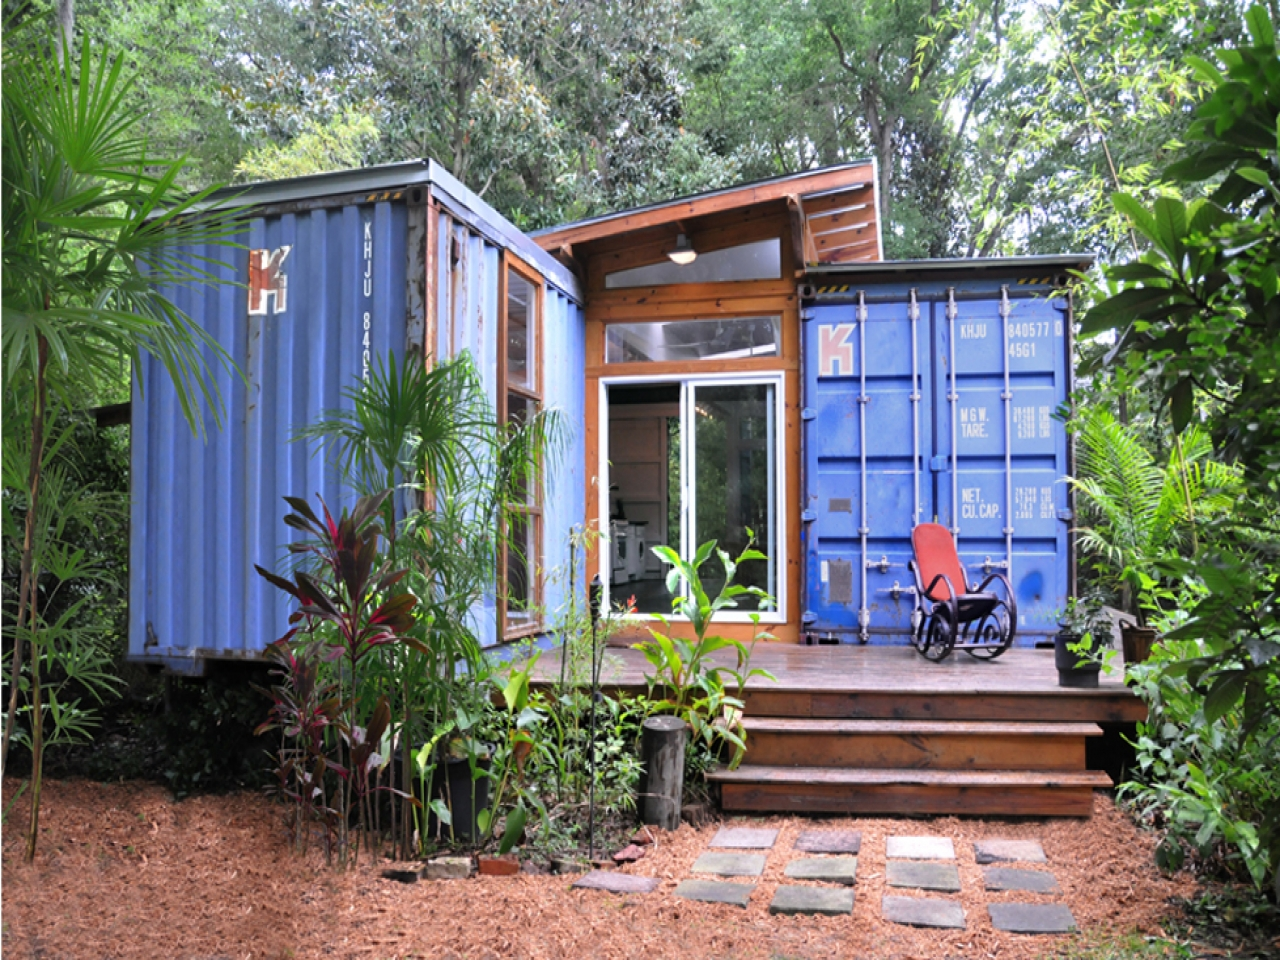 Shipping container homes kits shipping container tiny home small built homes - Shipping container home kit ...